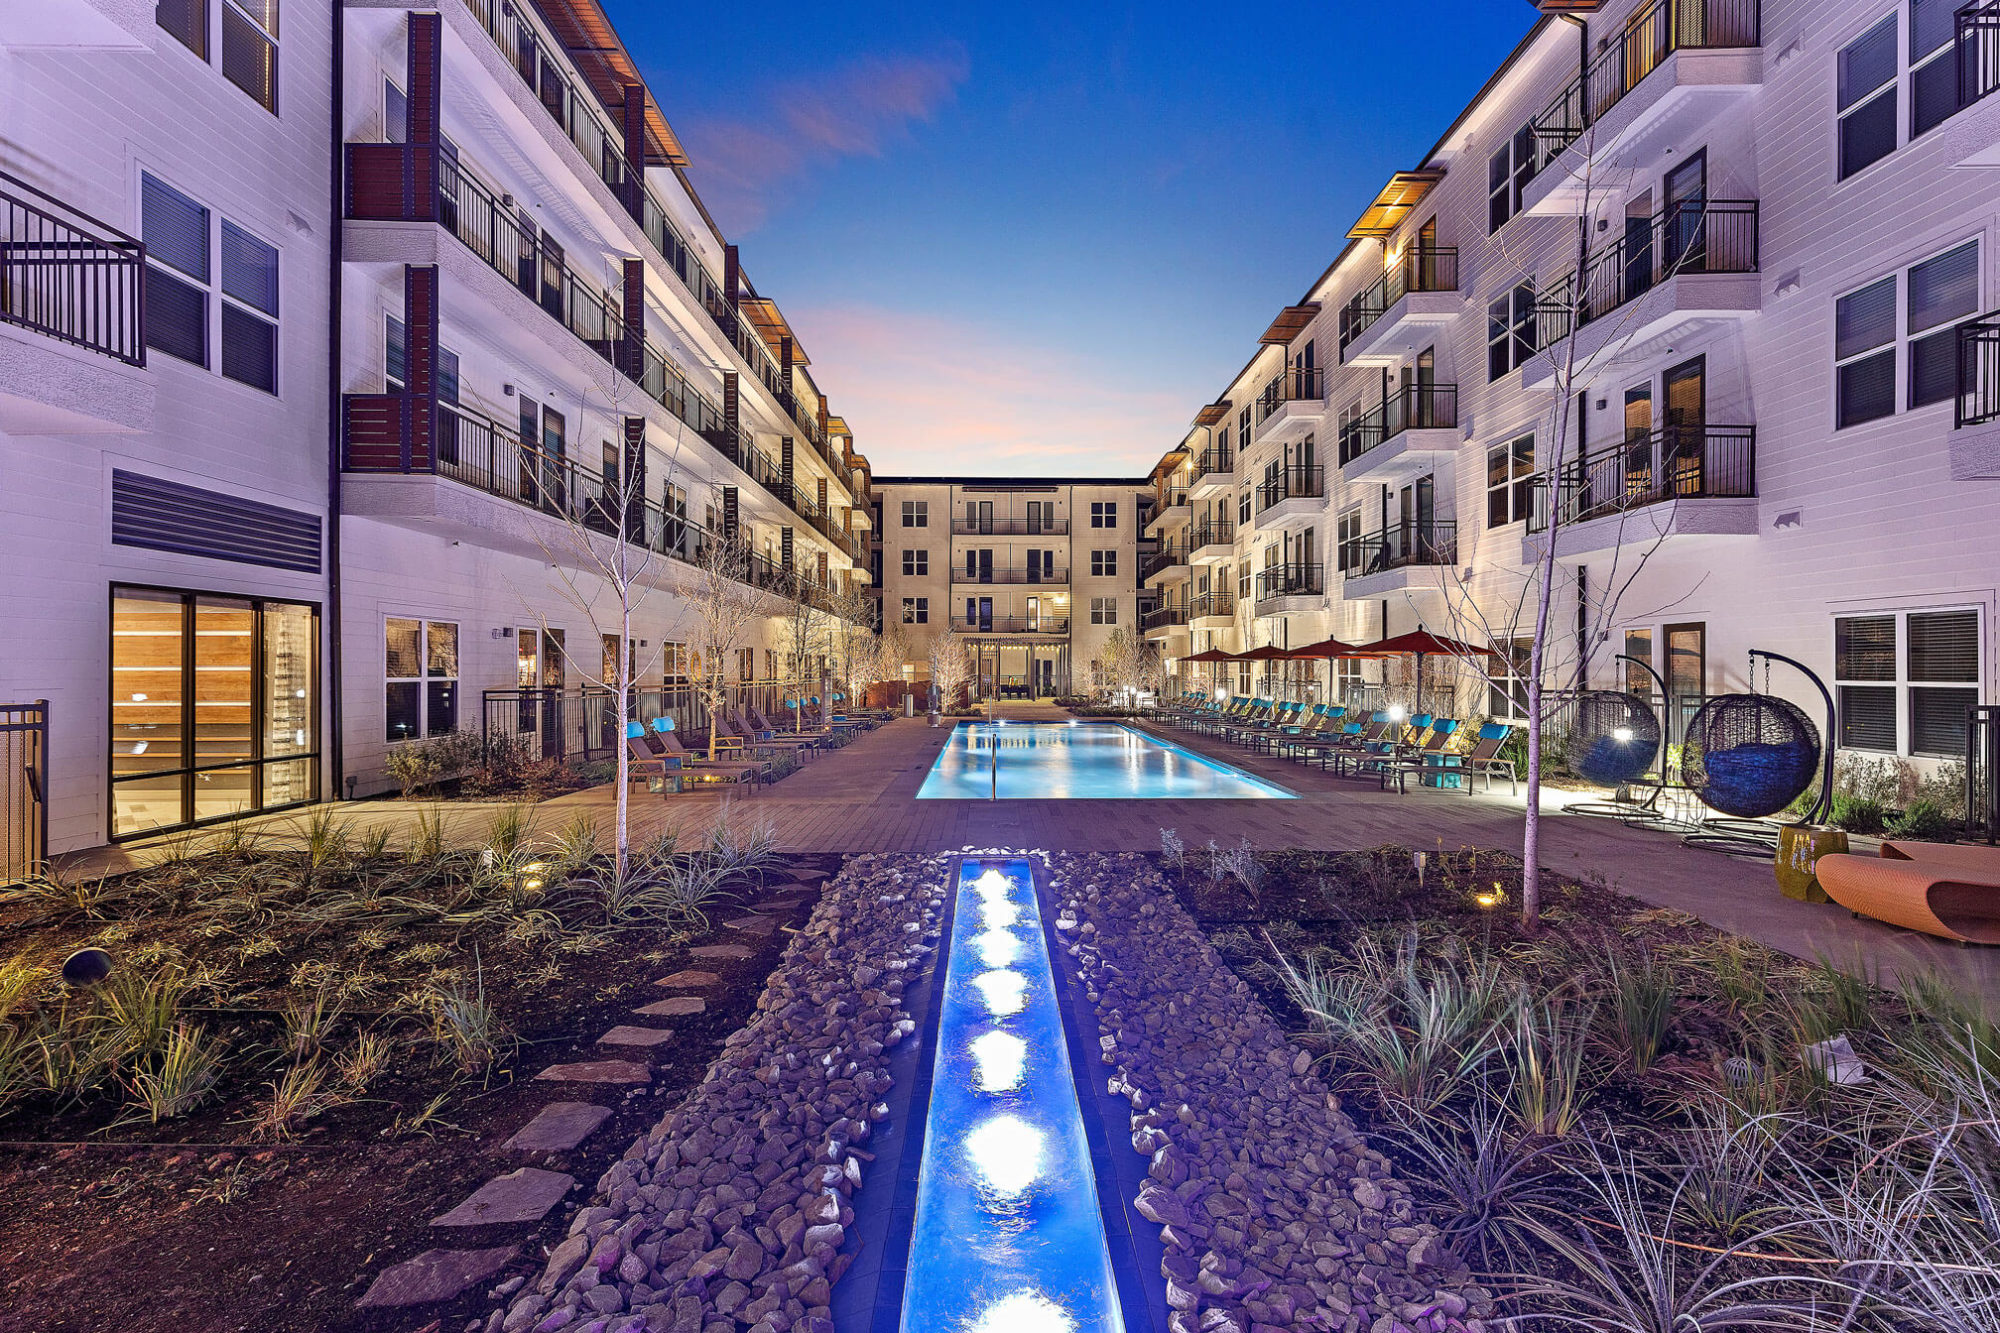 Pool courtyard with decorative fountains, landscaping, resort-like pool and variety of lounge seating